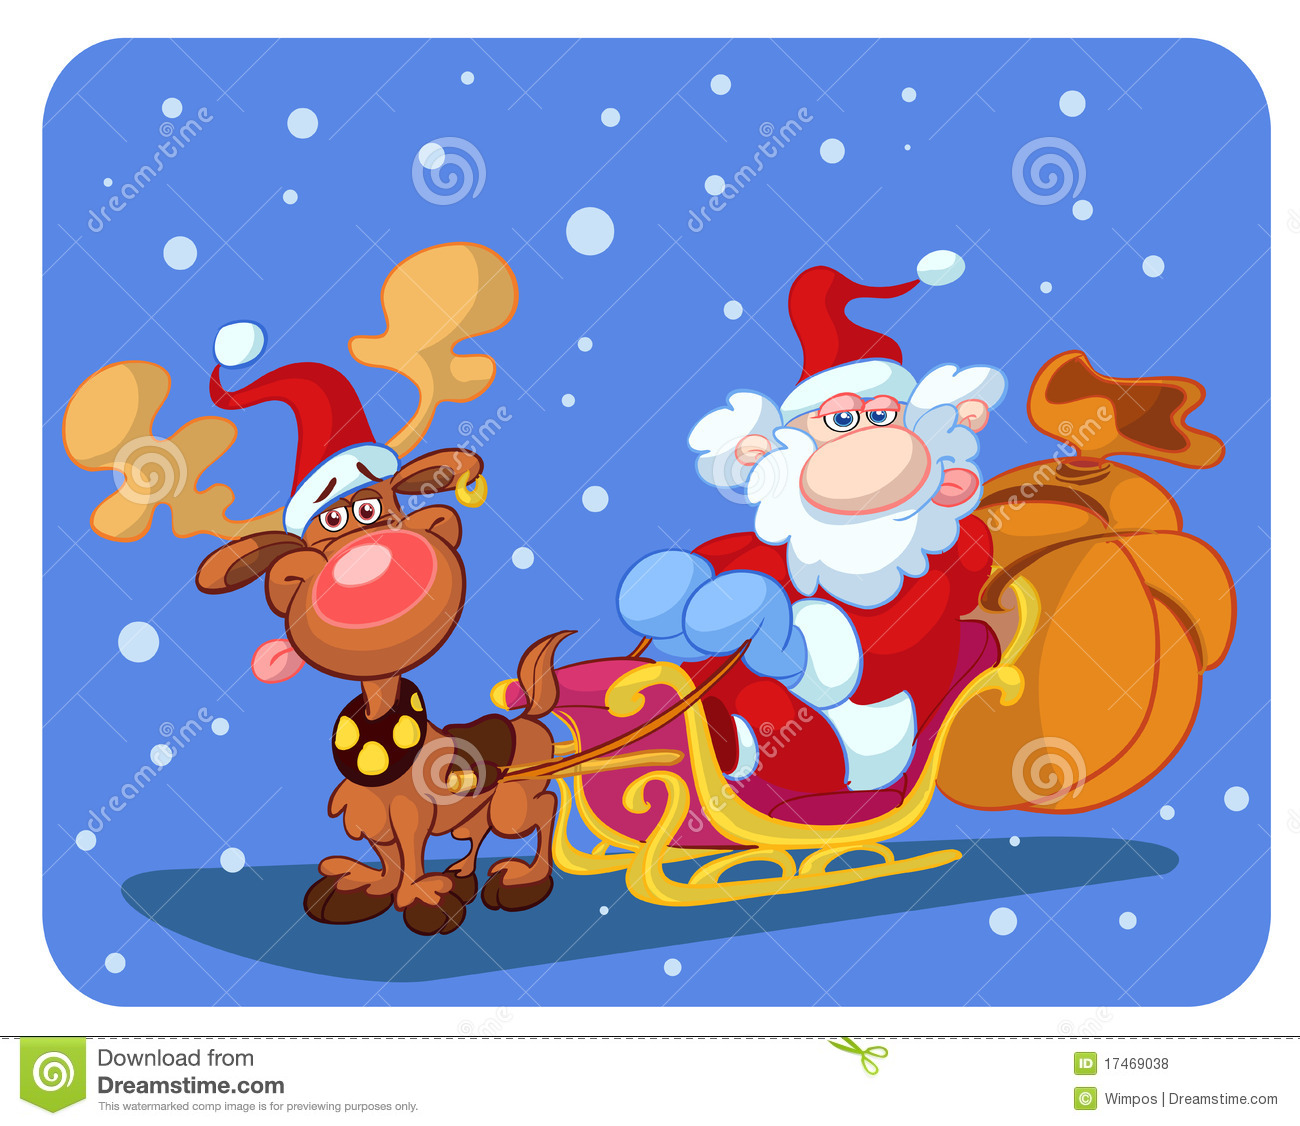 Christmas Cartoon Royalty Free Stock Photos - Image: 17469038